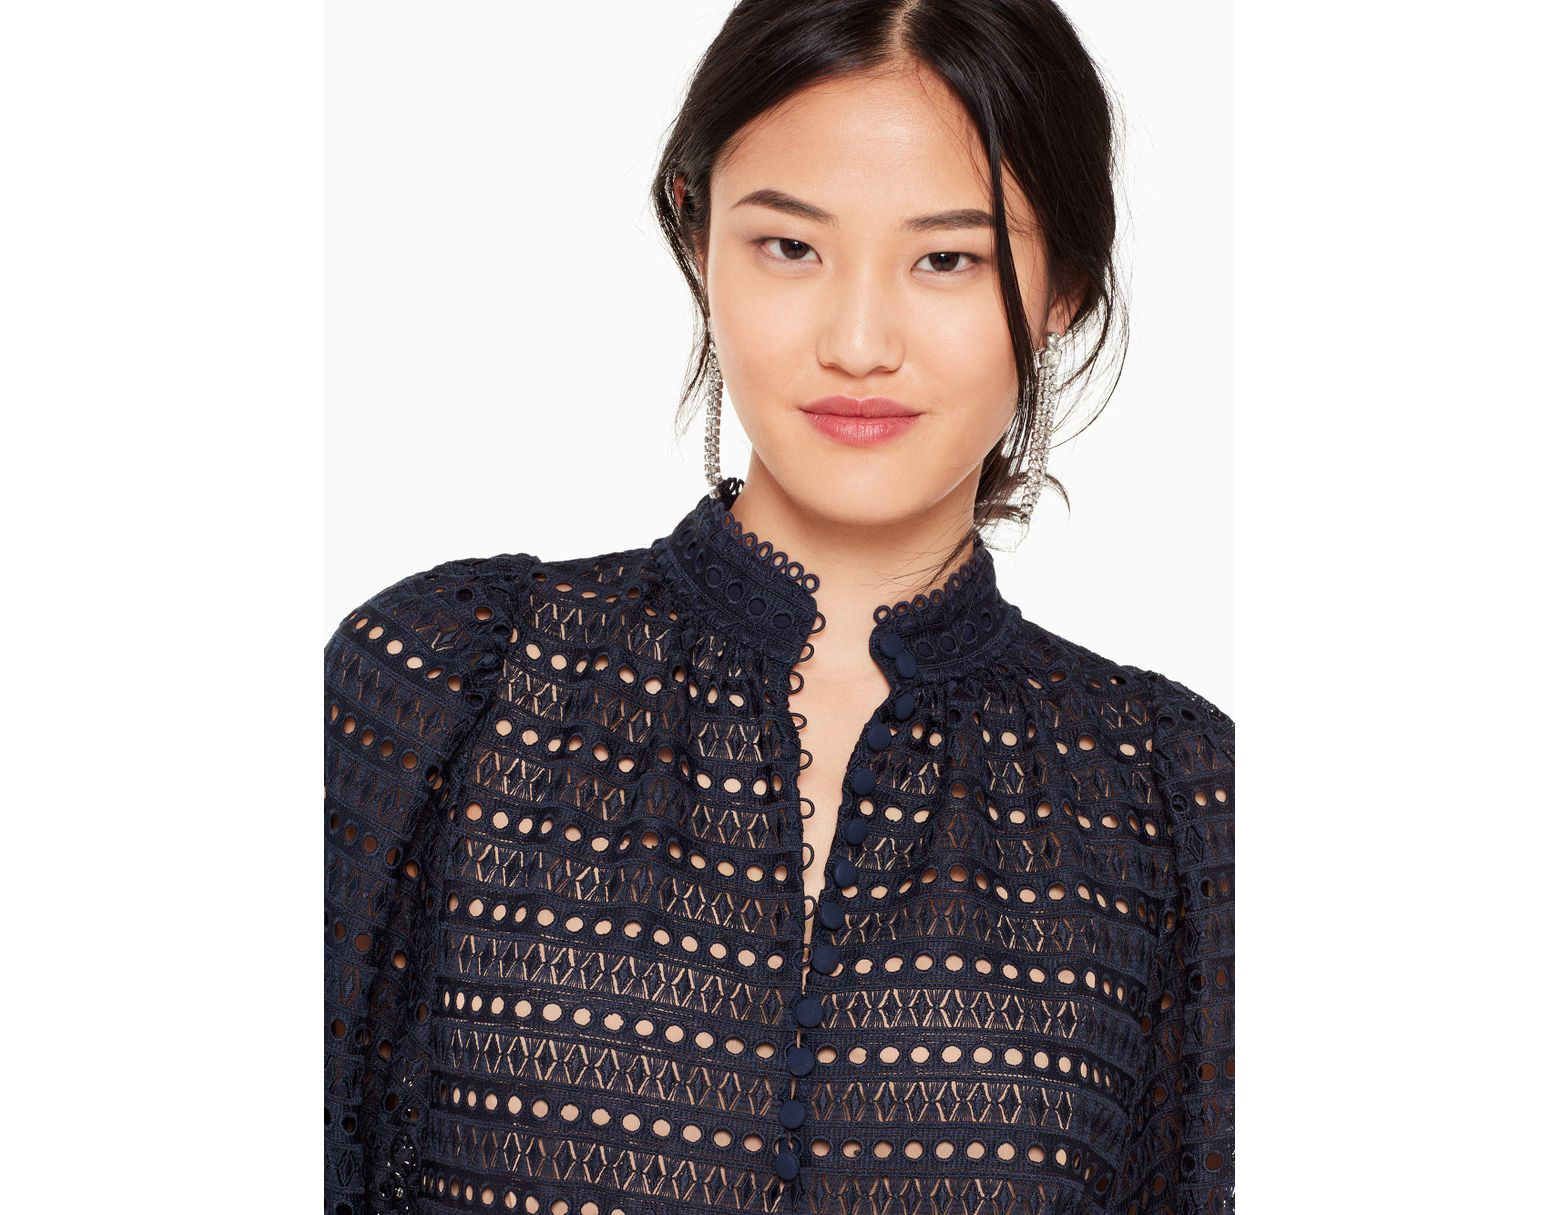 ad52bebf67 Kate Spade Lace Cris Top in Blue - Save 25% - Lyst